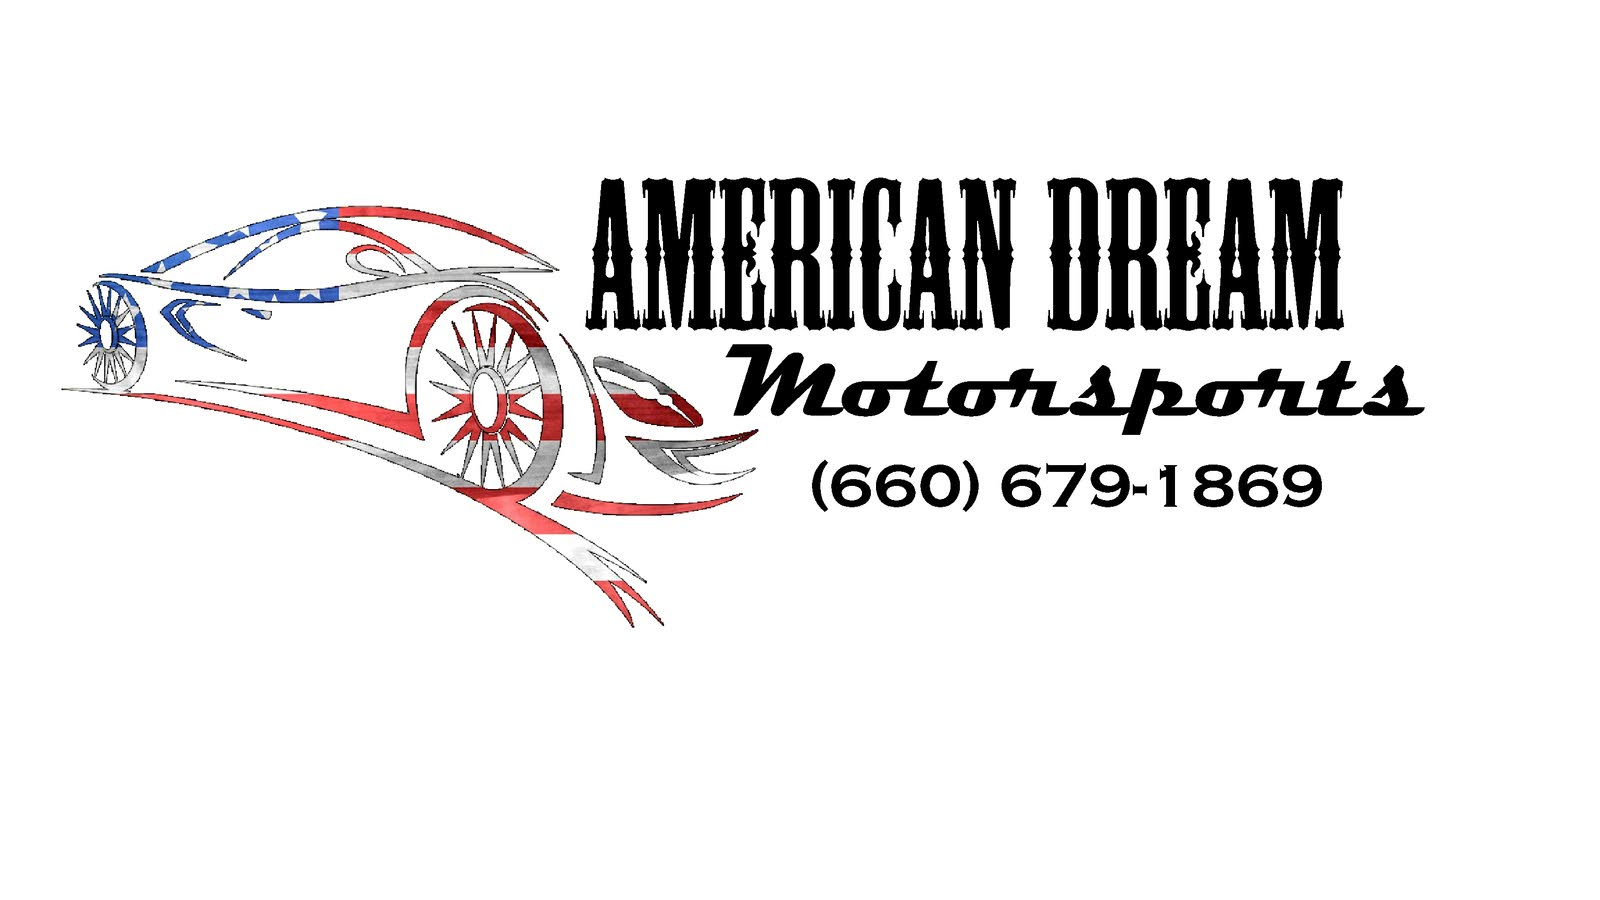 American Dream Motorsports Archie Mo Read Consumer